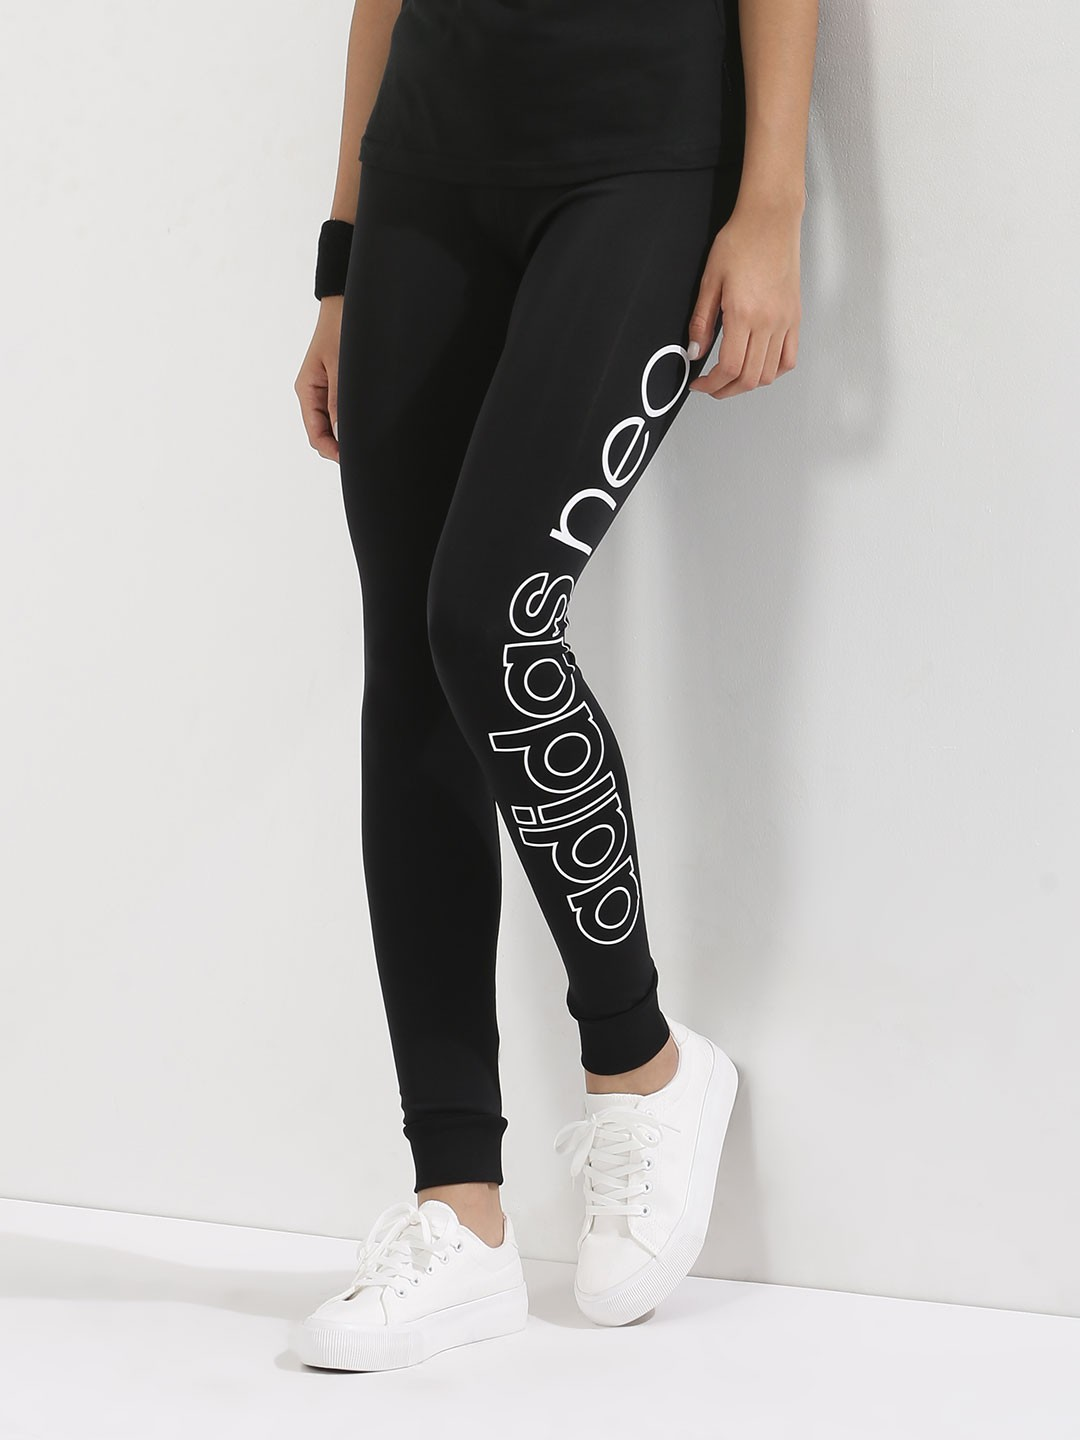 Buy ADIDAS NEO Leggings For Women - Womenu0026#39;s Black/White Leggings Online in India